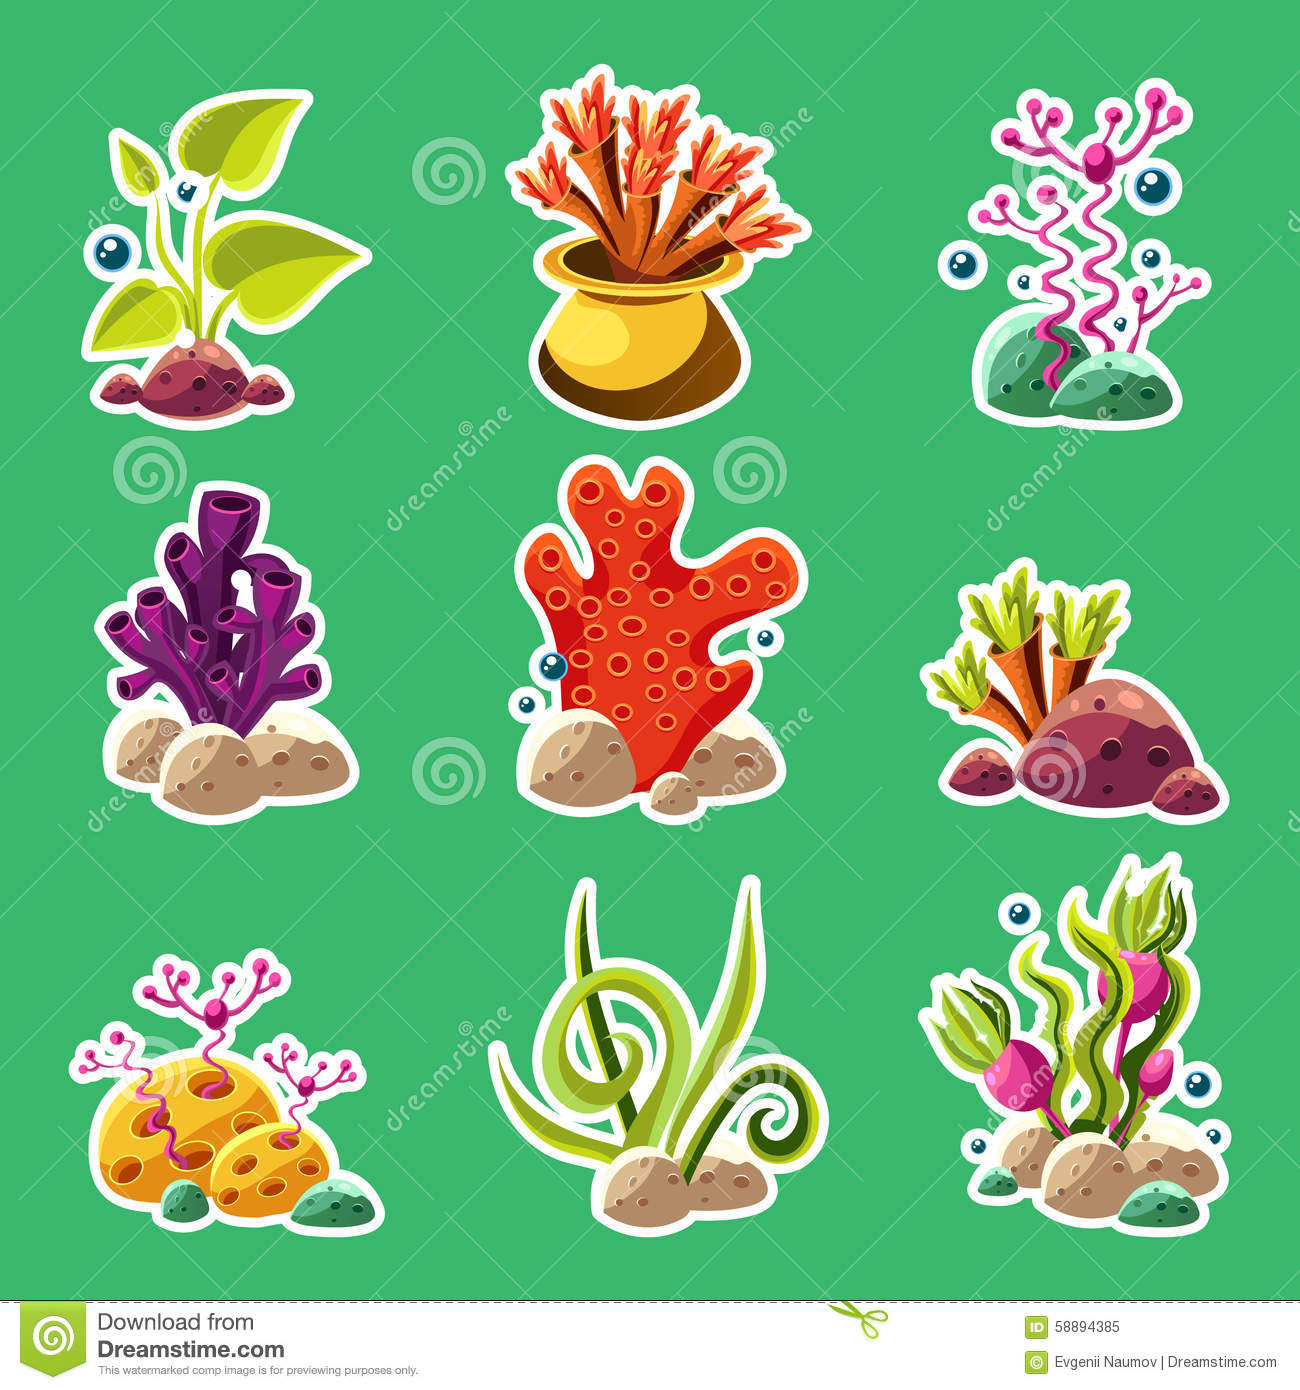 Algae clipart cartoon. Underwate plant